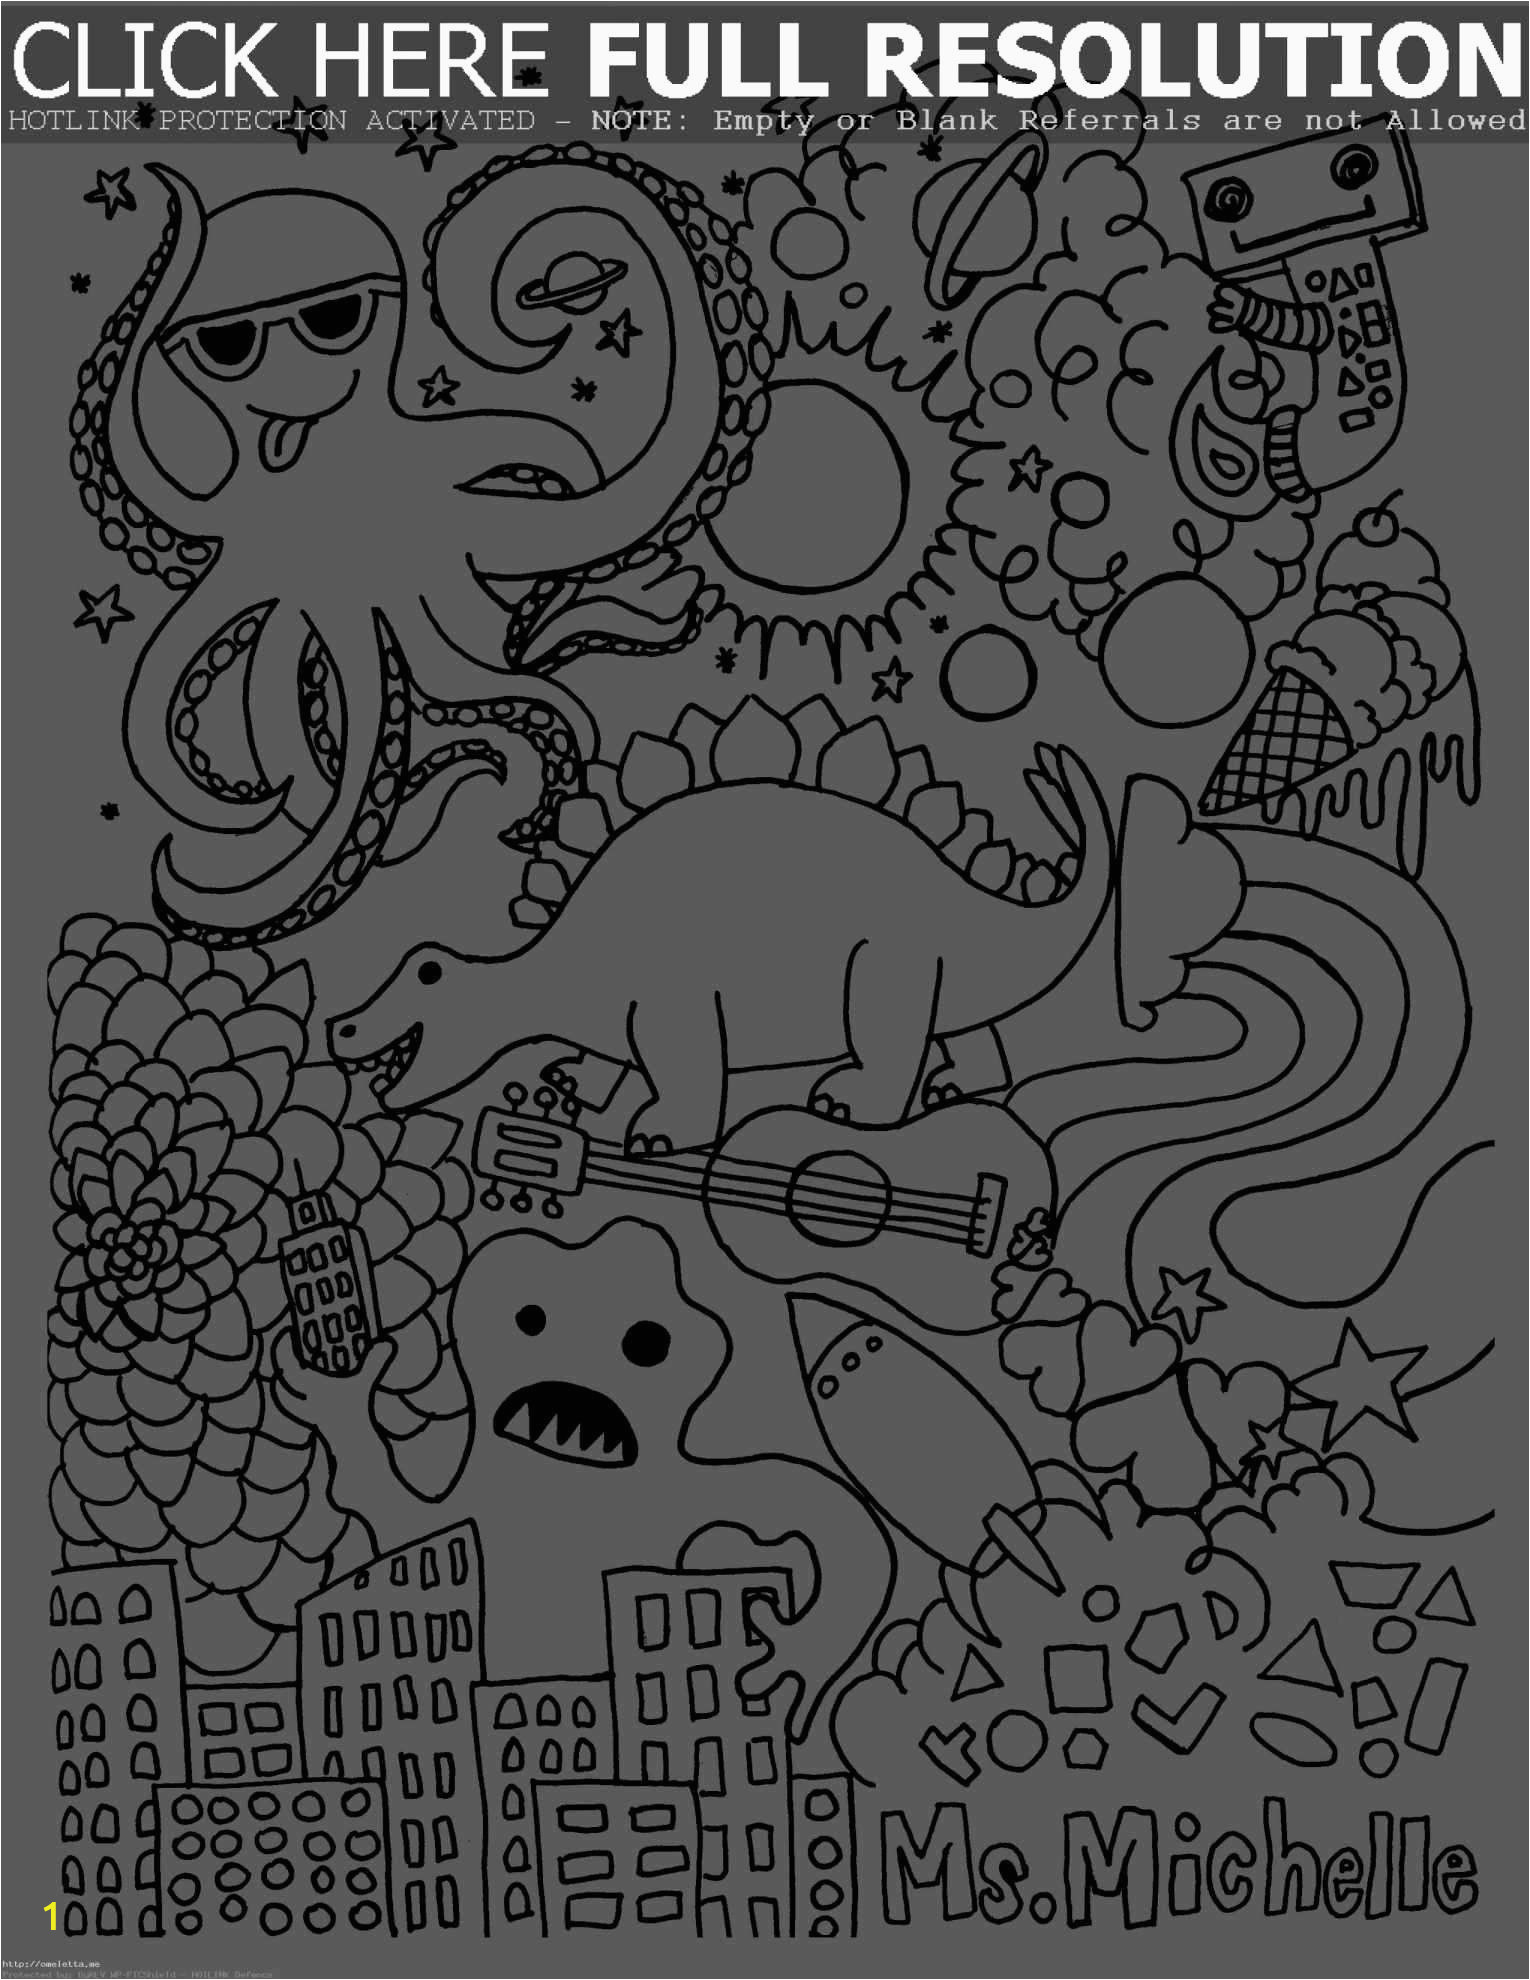 Coloring Pages for Thanksgiving Printable Barbie Printable Coloring Sheets Beautiful Monet Coloring